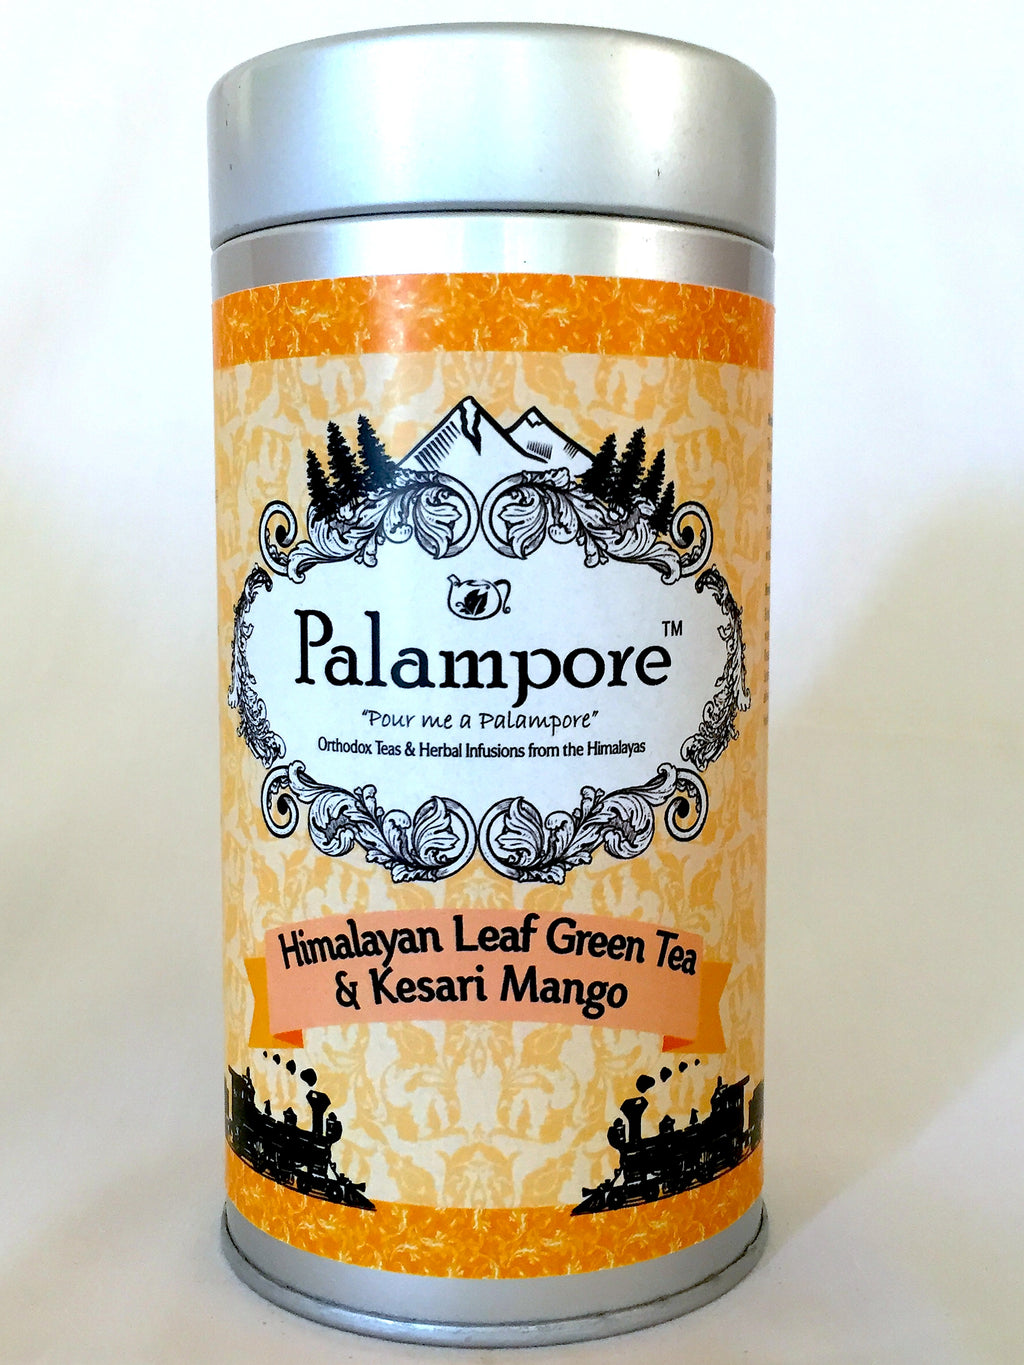 PALAMPORE- Himalayan Long Leaf Green Tea & Kesari Mango